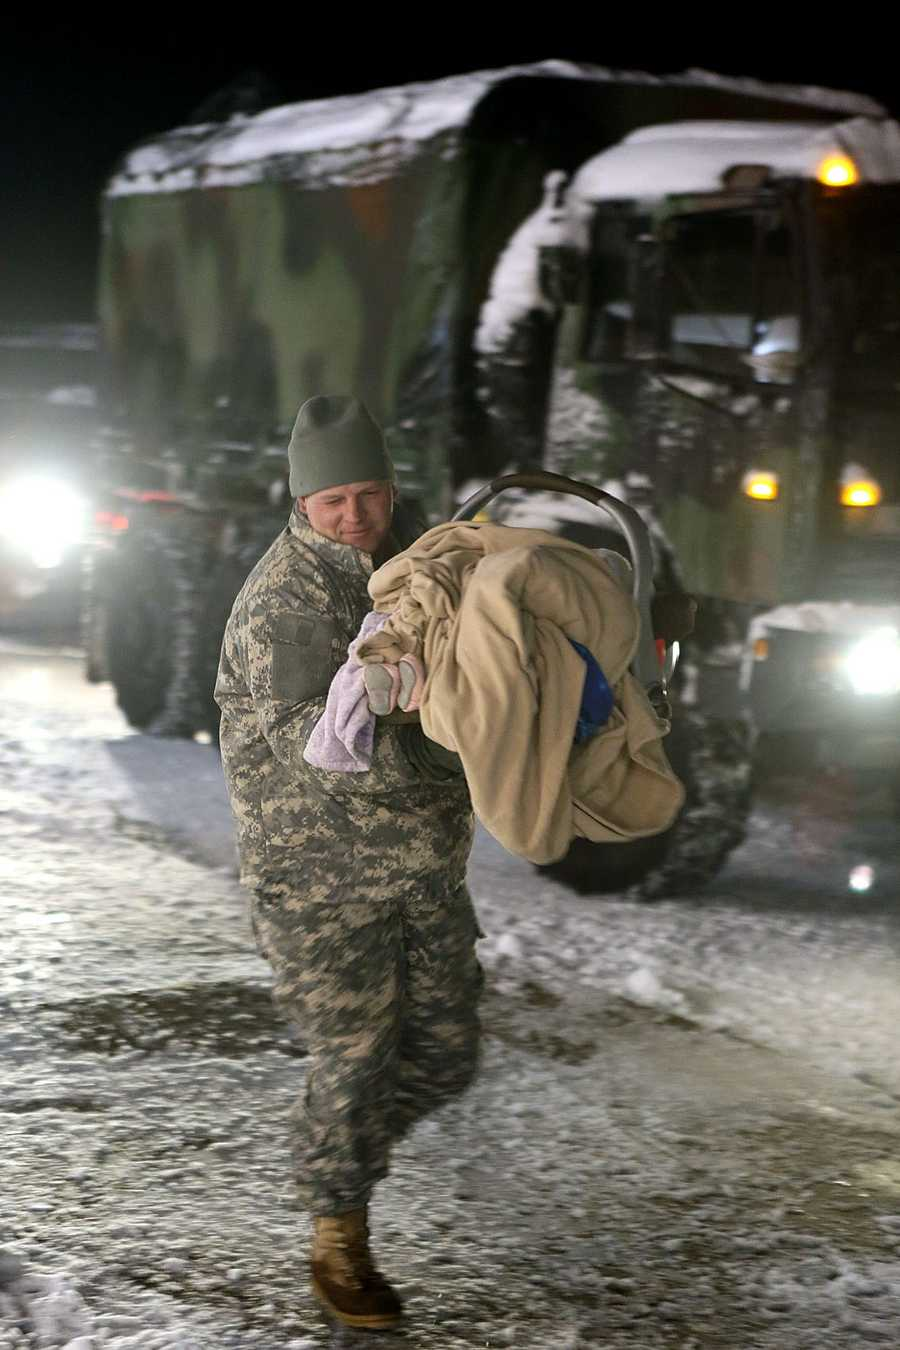 A National Guardsman brings a young baby into the Furnace Brook Middle Schoolin Marshfield.